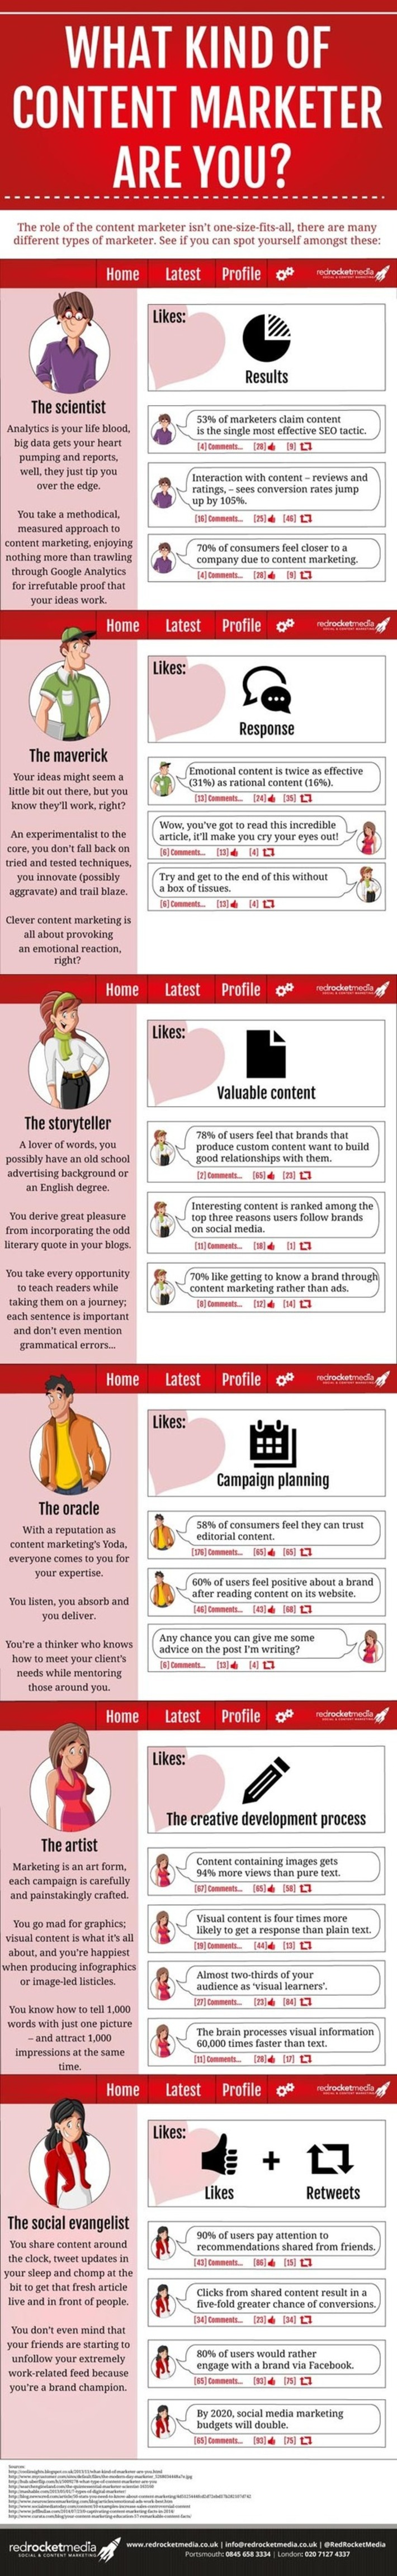 What kind of content marketer are you? [Infographic] | Brand Storytelling | Scoop.it